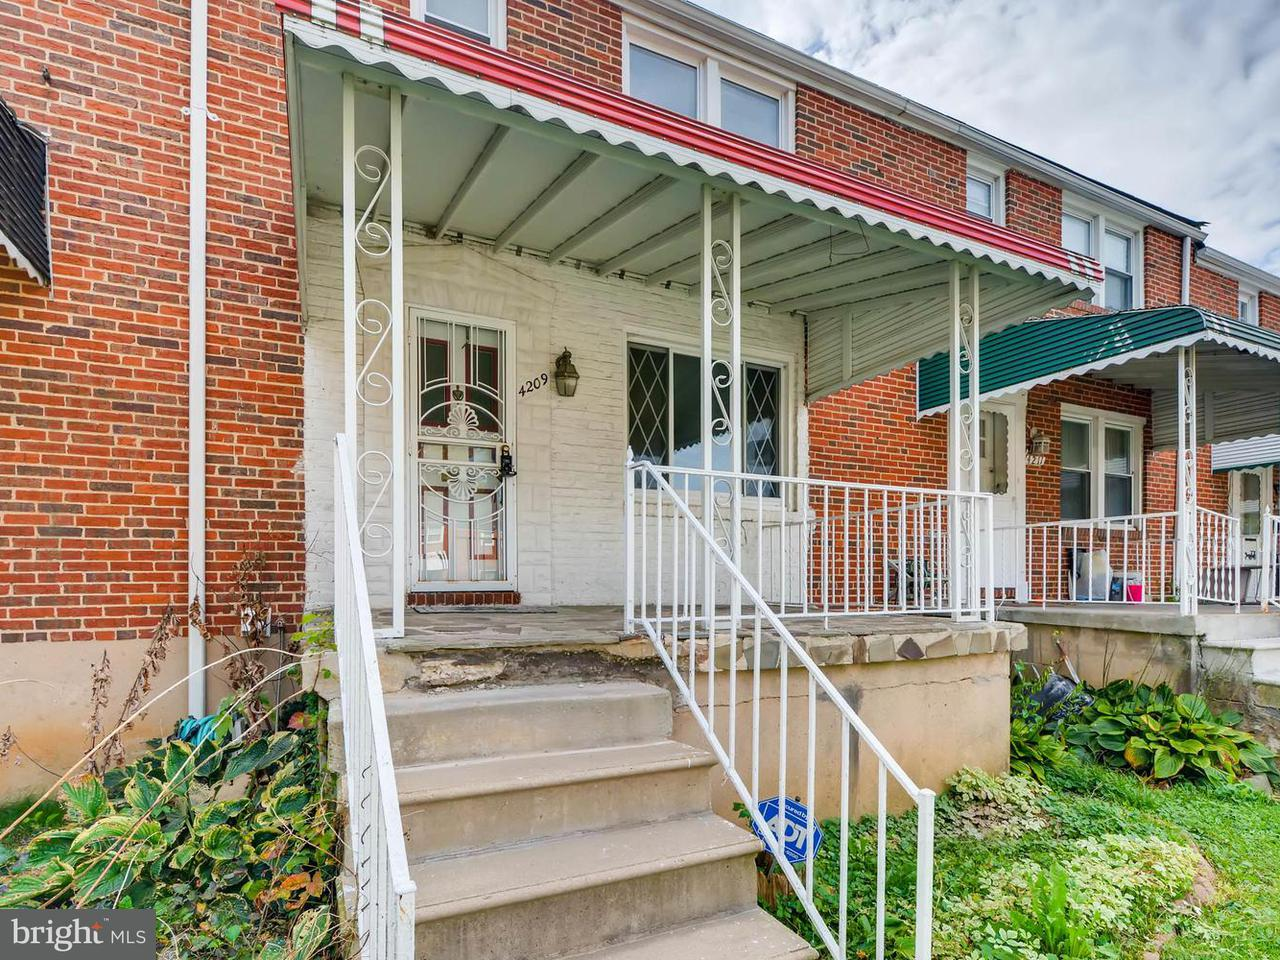 4209  Rogers Baltimore, MD 21215